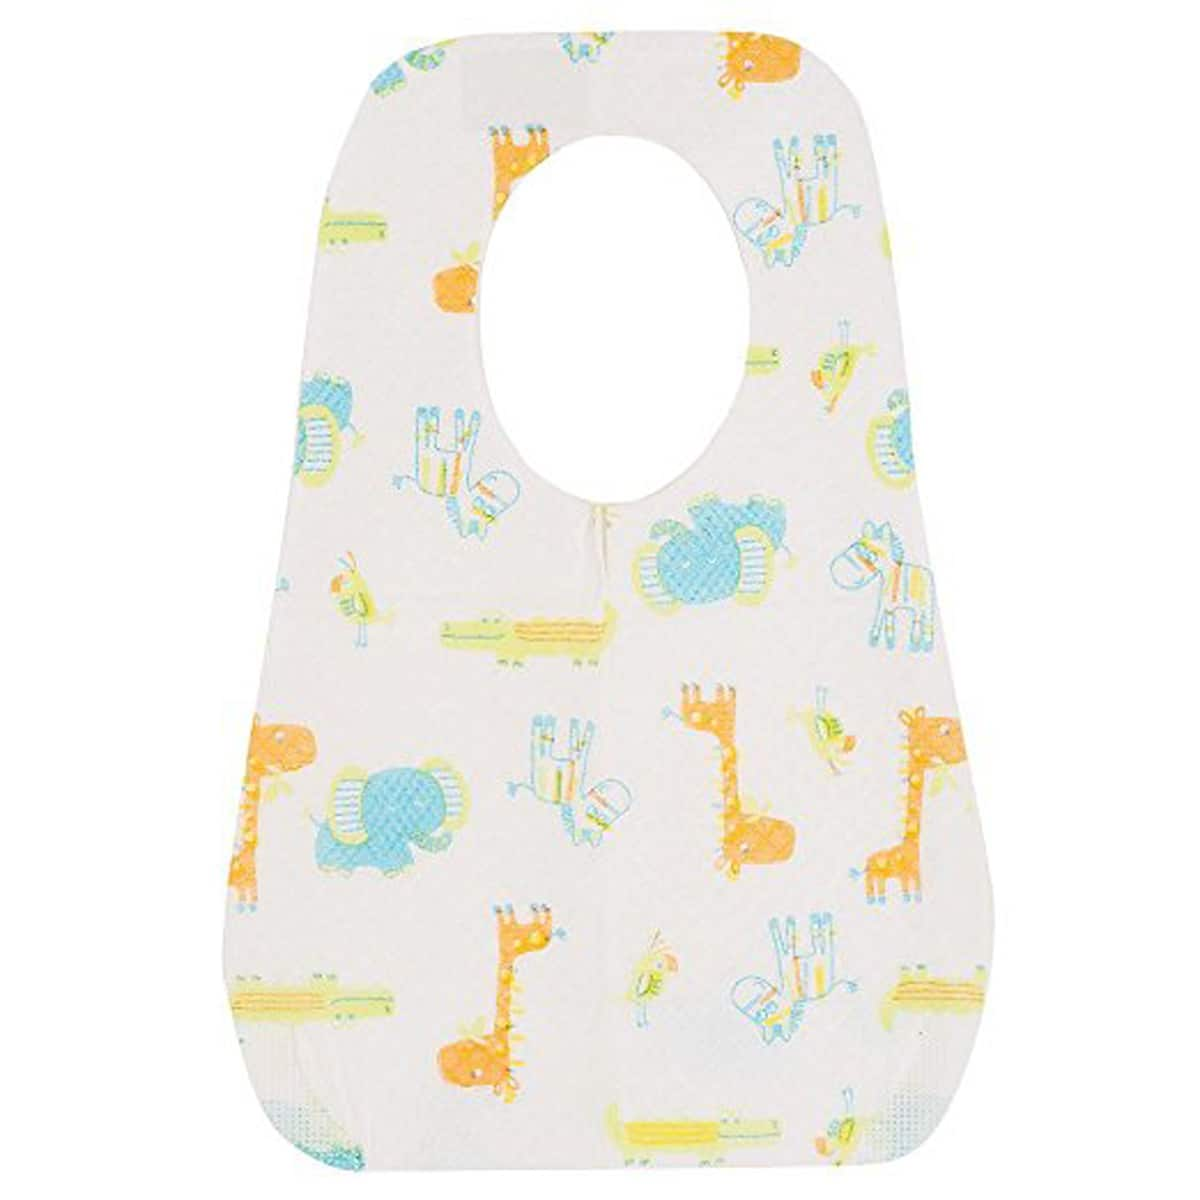 The Best Baby Bibs, According to Moms of Super-Messy Kids: gallery image 4